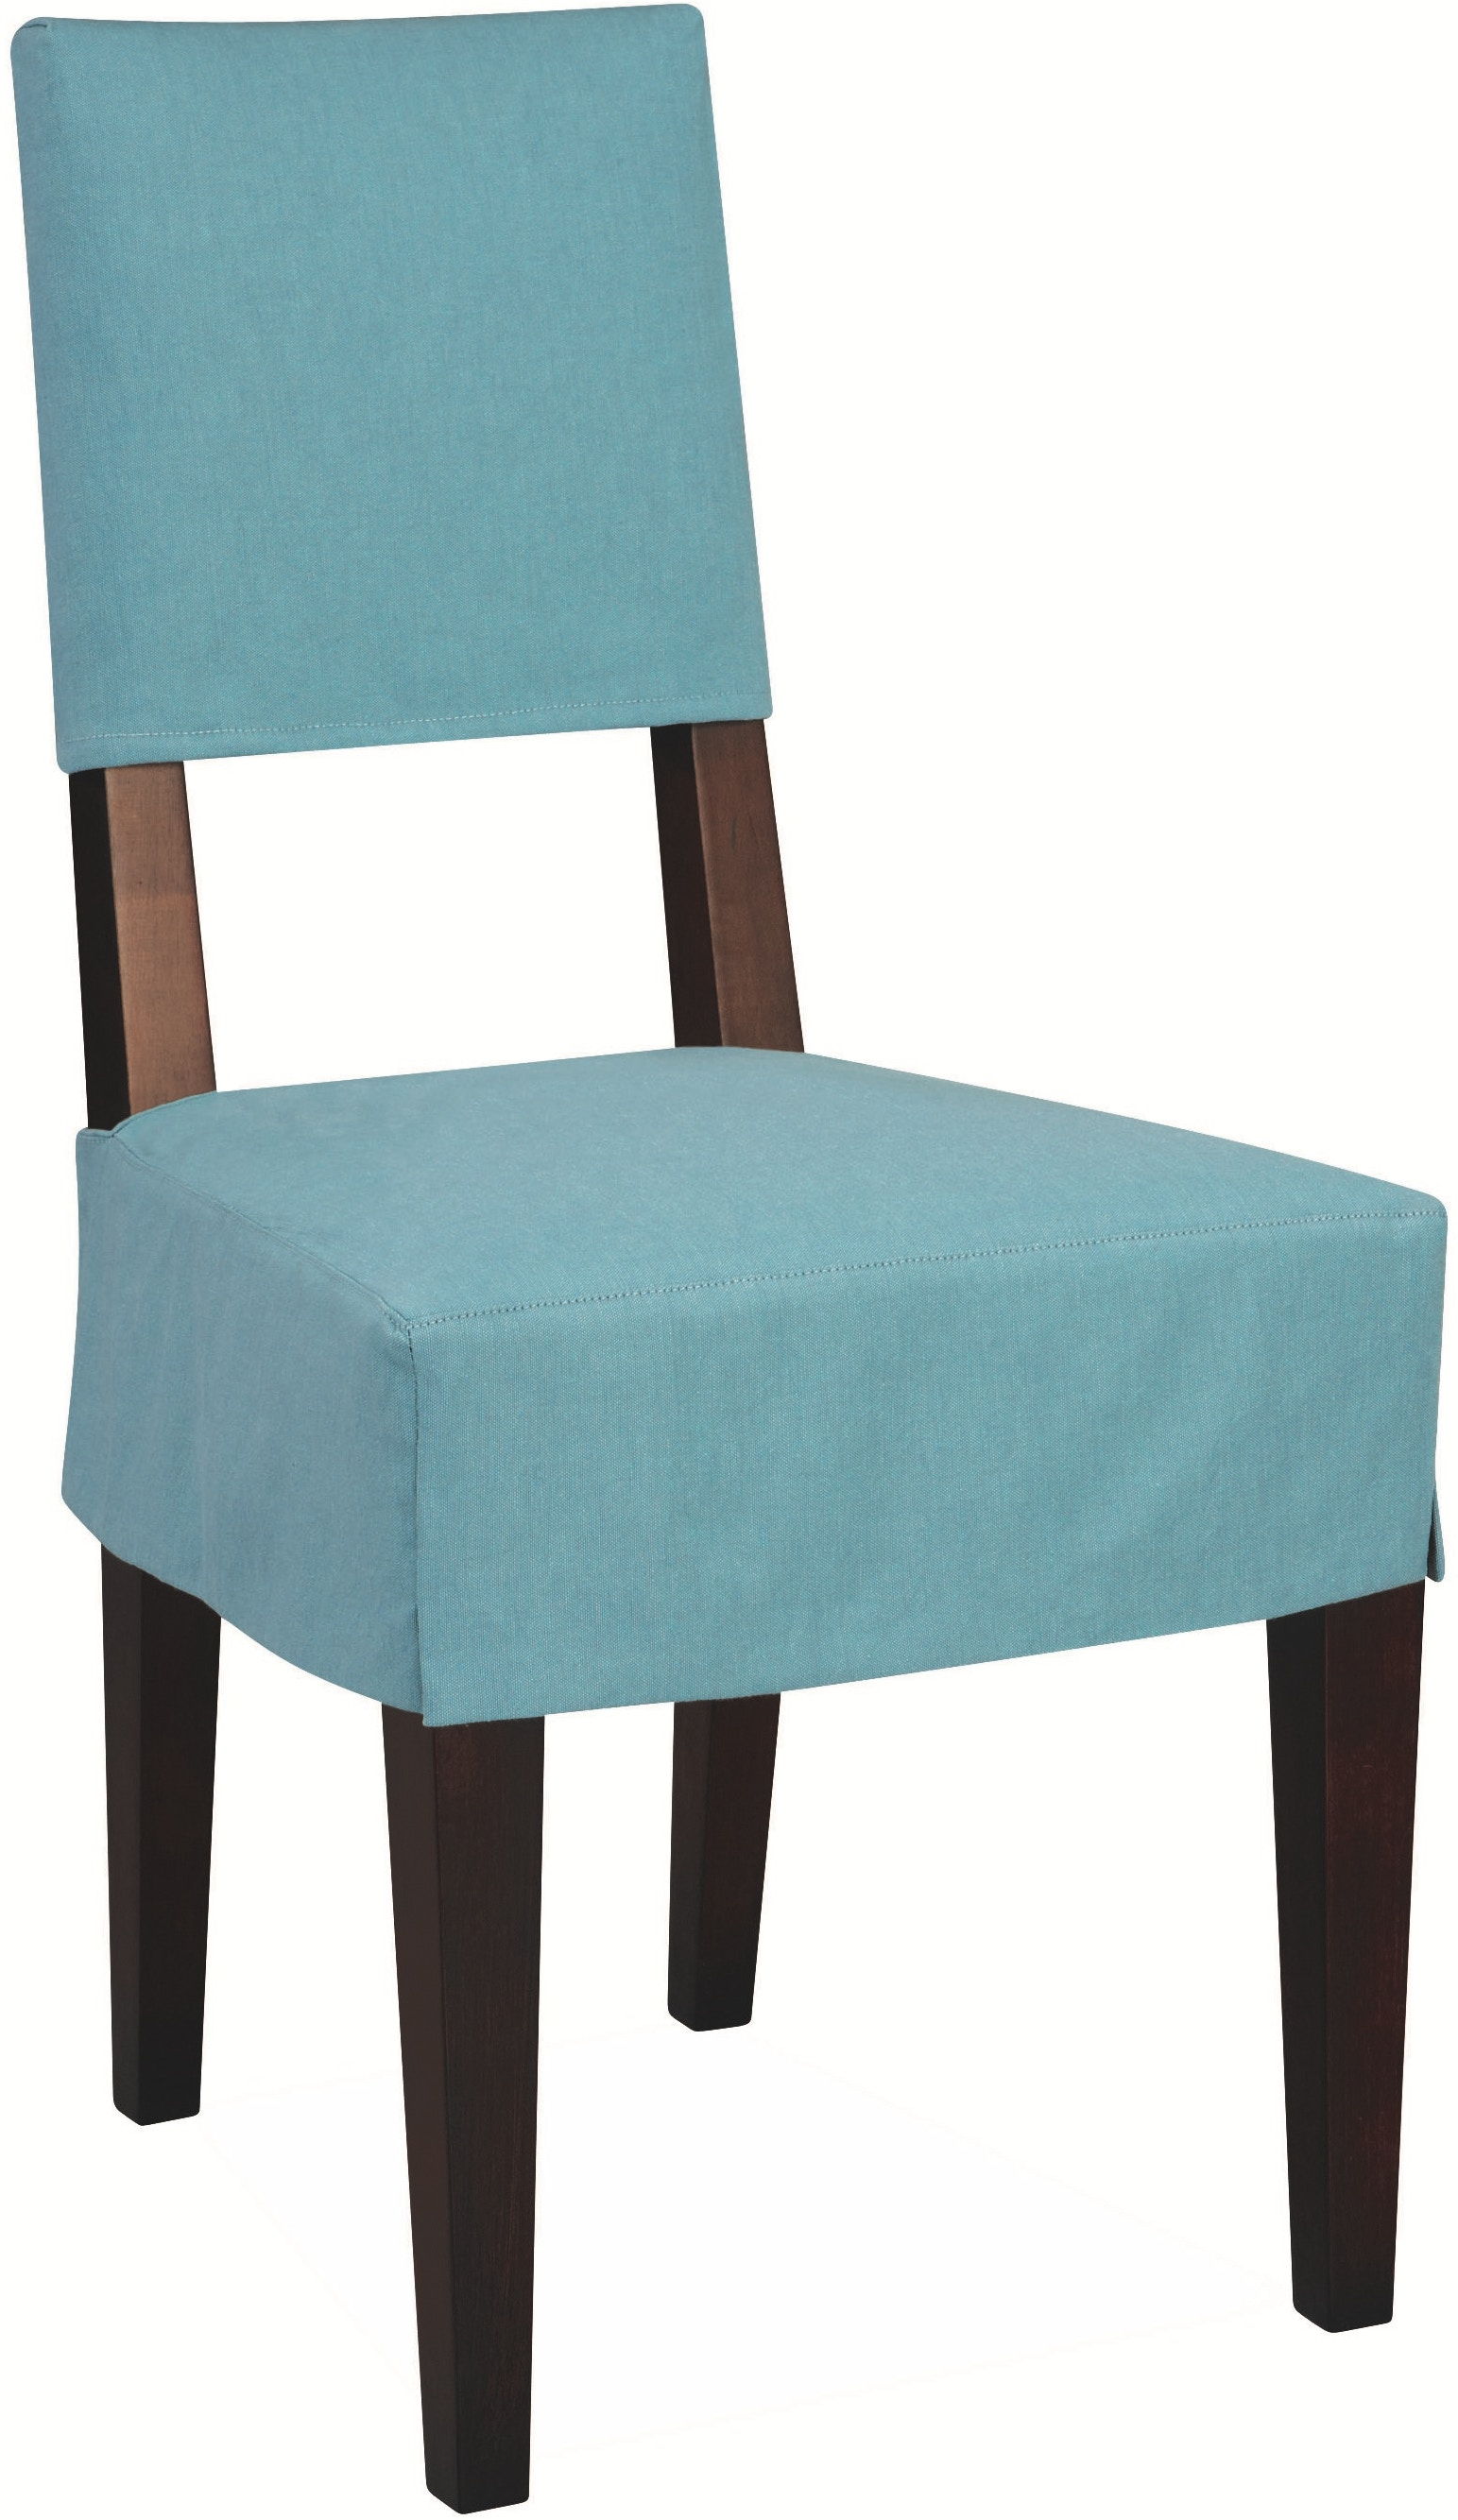 Lee Industries Dining Room Slipcovered Dining Chair C5573